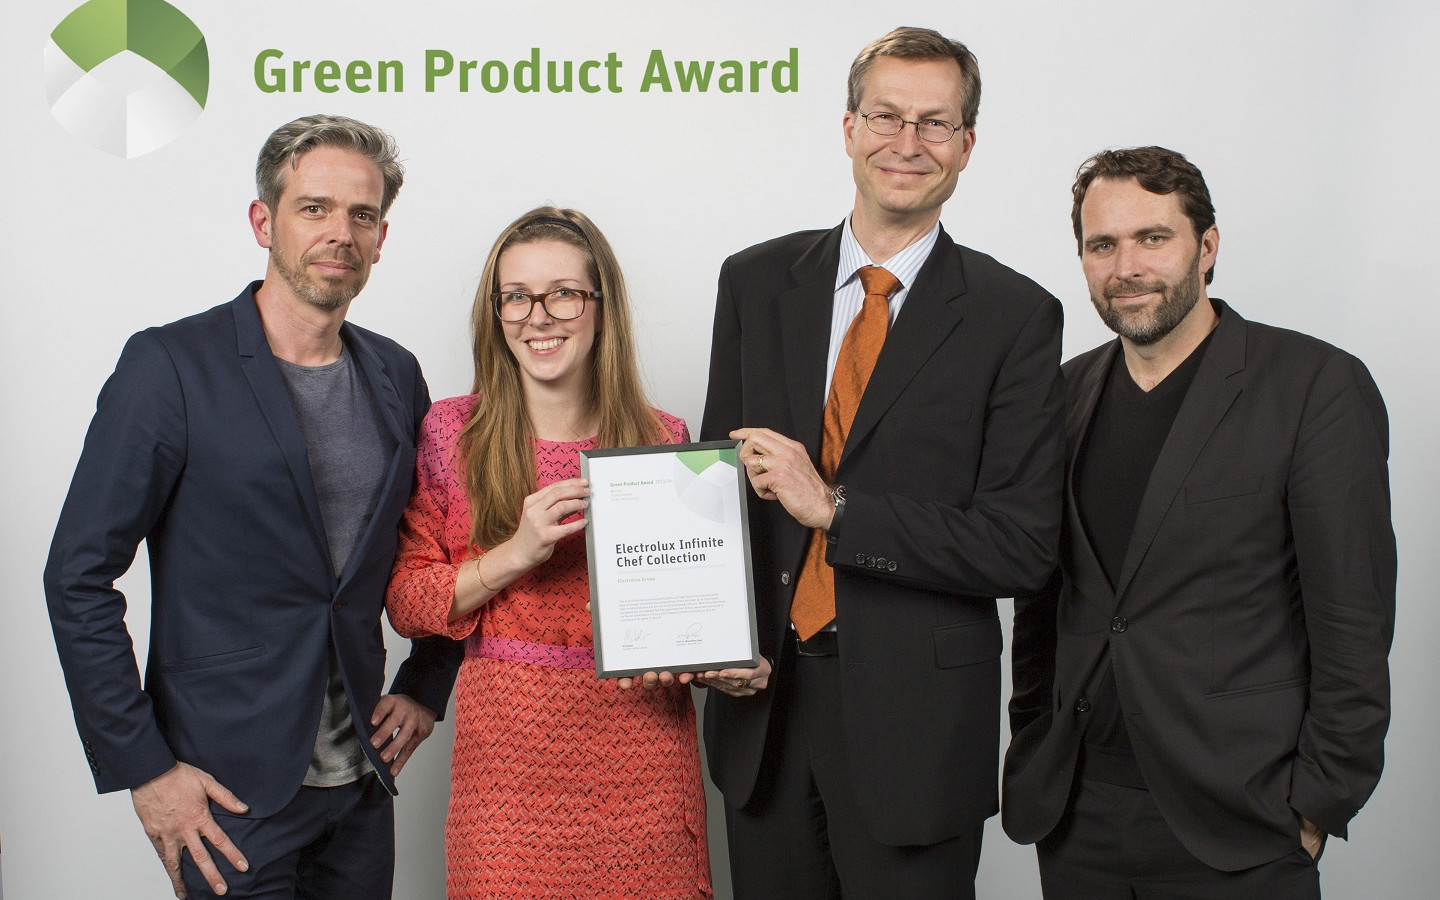 The closing event for the first ever Green Product Award